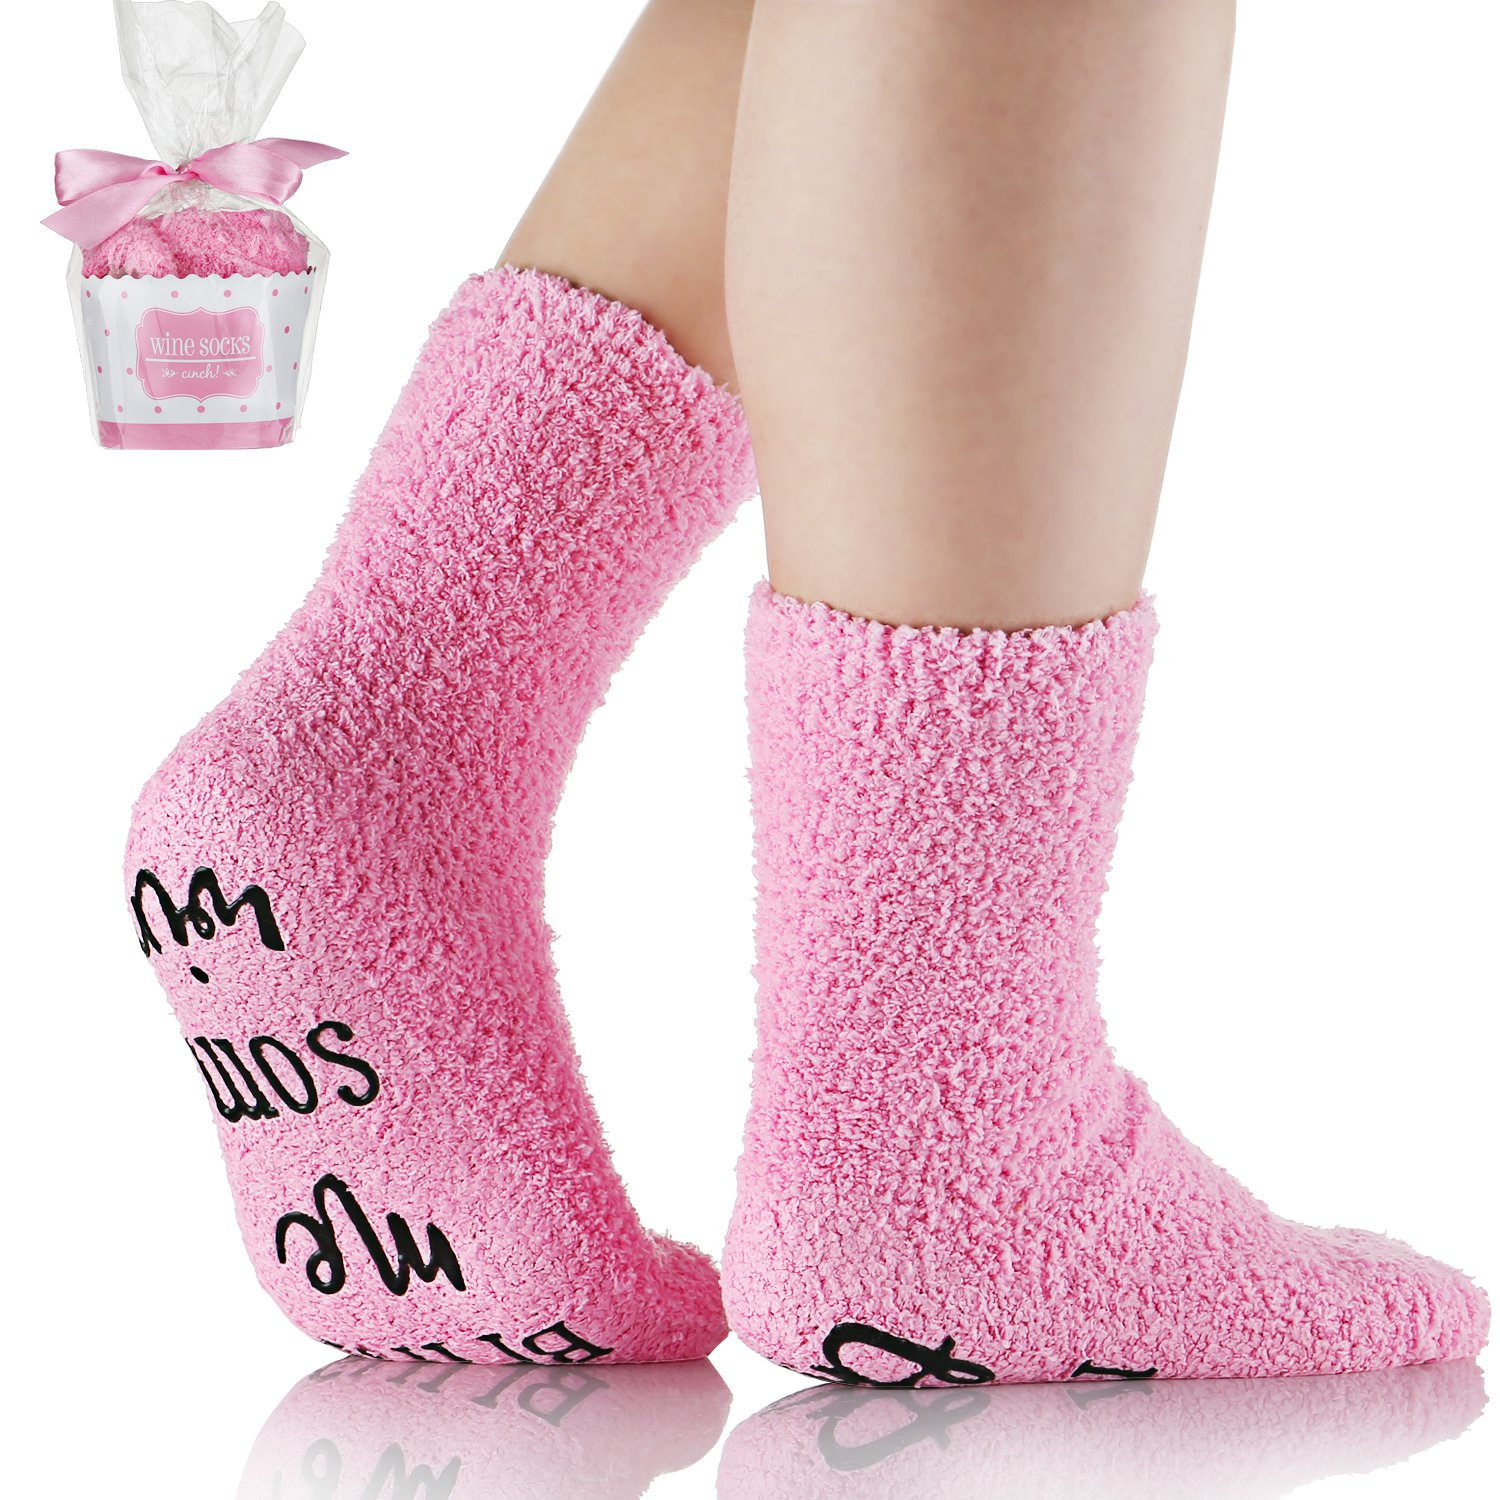 Wine Socks With Funny Words If You Can Read This,Cupcake Gift Packaging,Valentine's Day,Mother's Day,Christmas Day,Birthday,Anniversary,Gifts for Women,Mom,Her,Wife,Sister,Friends,Teacher by Angel Lover